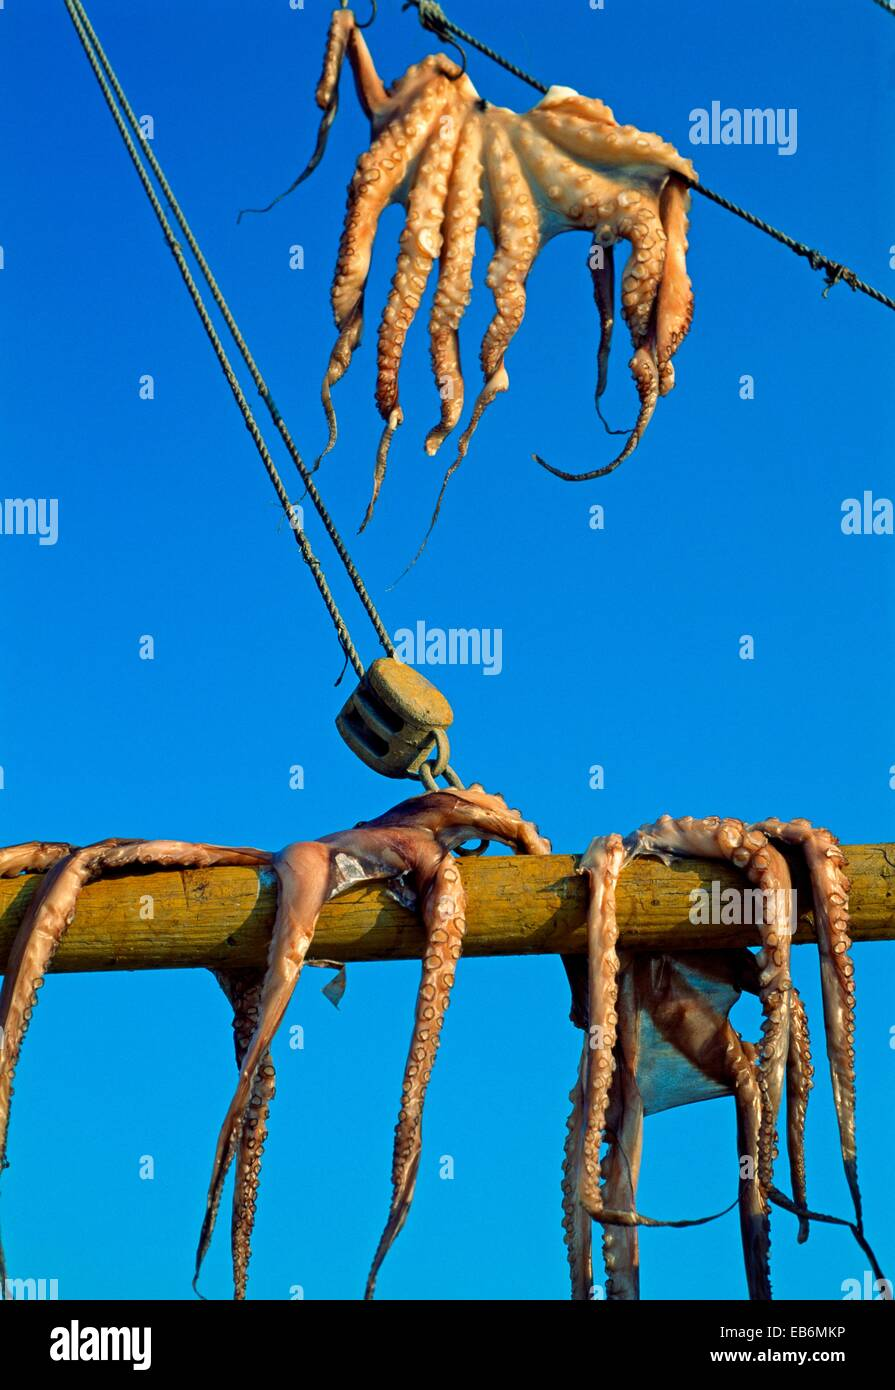 Octopus Drying Stock Photos & Octopus Drying Stock Images - Page 5 ...